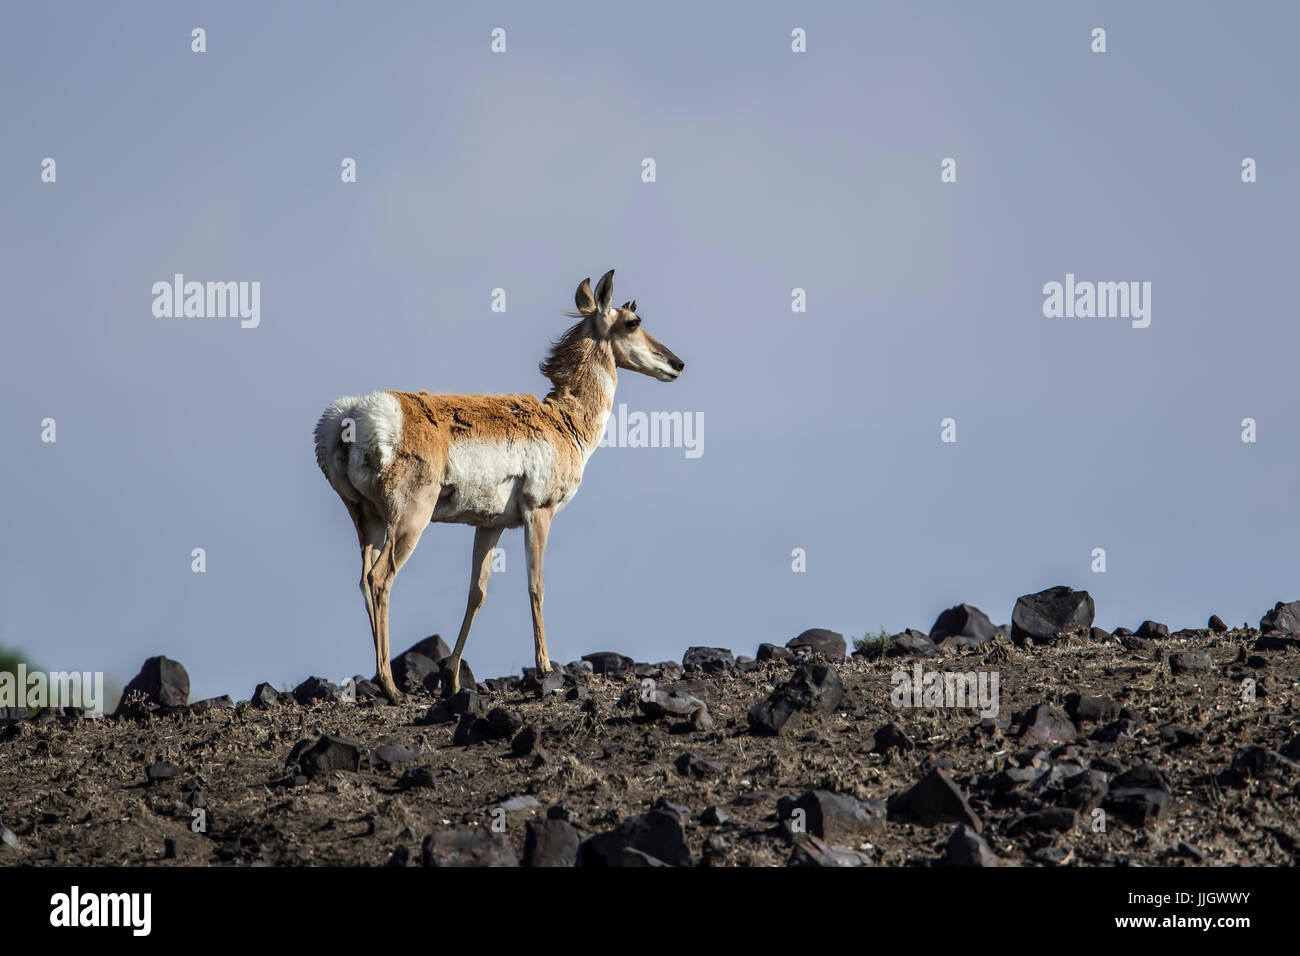 A pronghorn deer in the rocky grasslands of northeastern Wyoming. - Stock Image